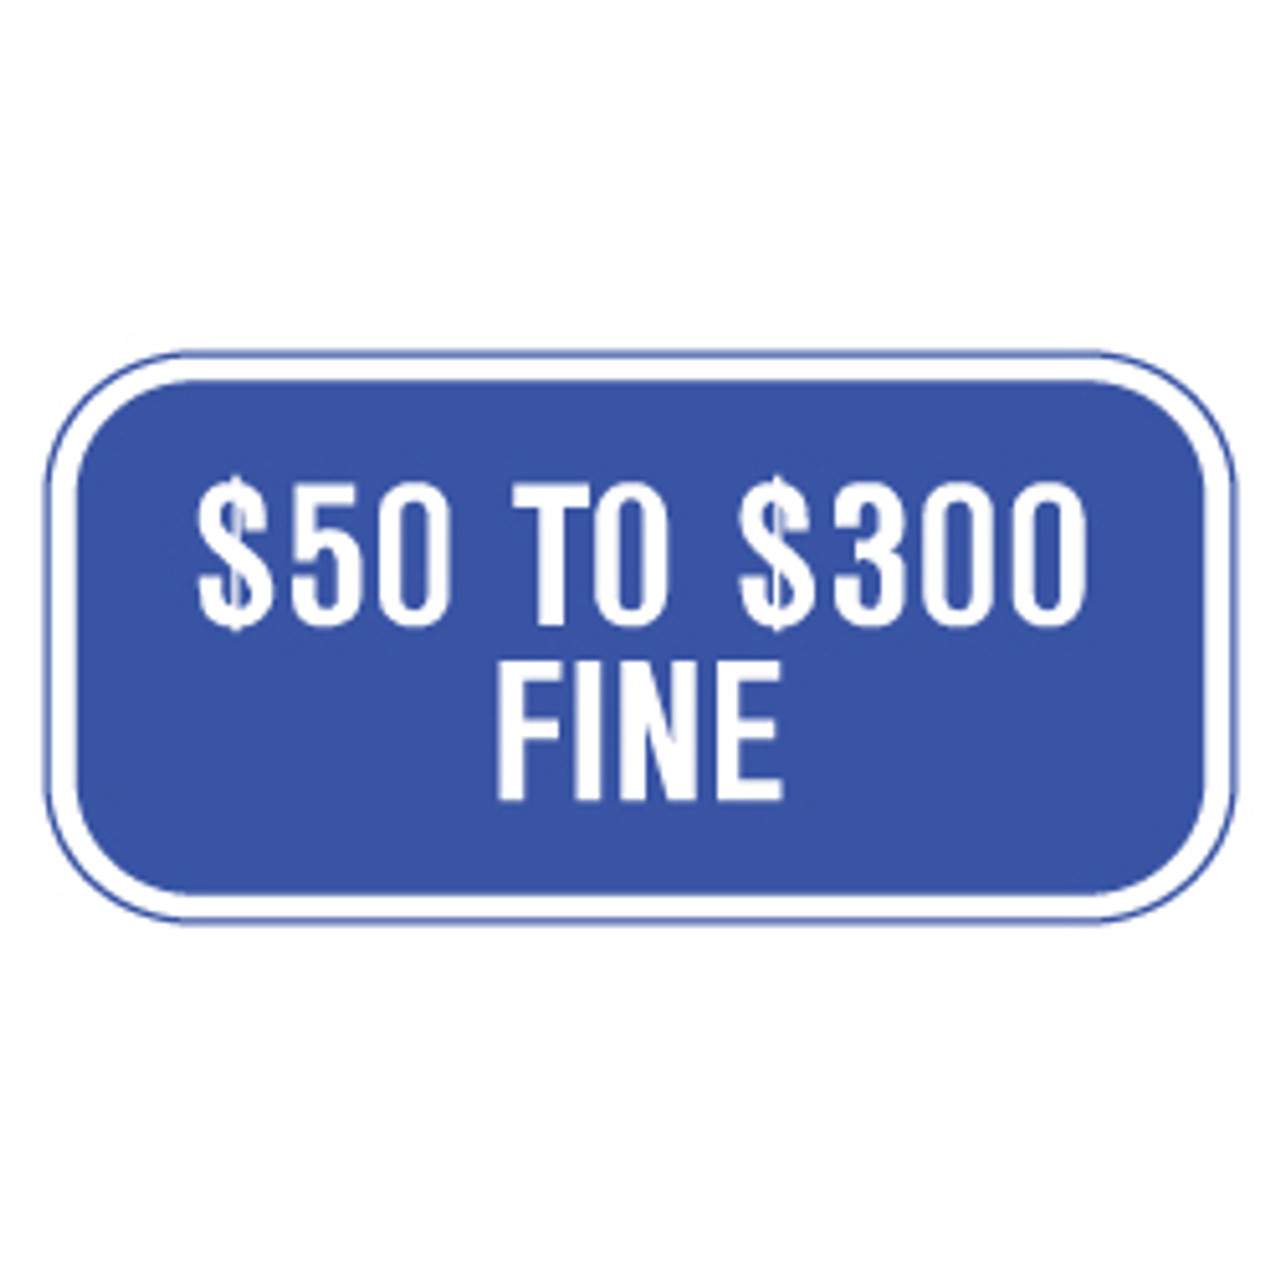 Missouri Handicap Parking Fine Sign - Blue